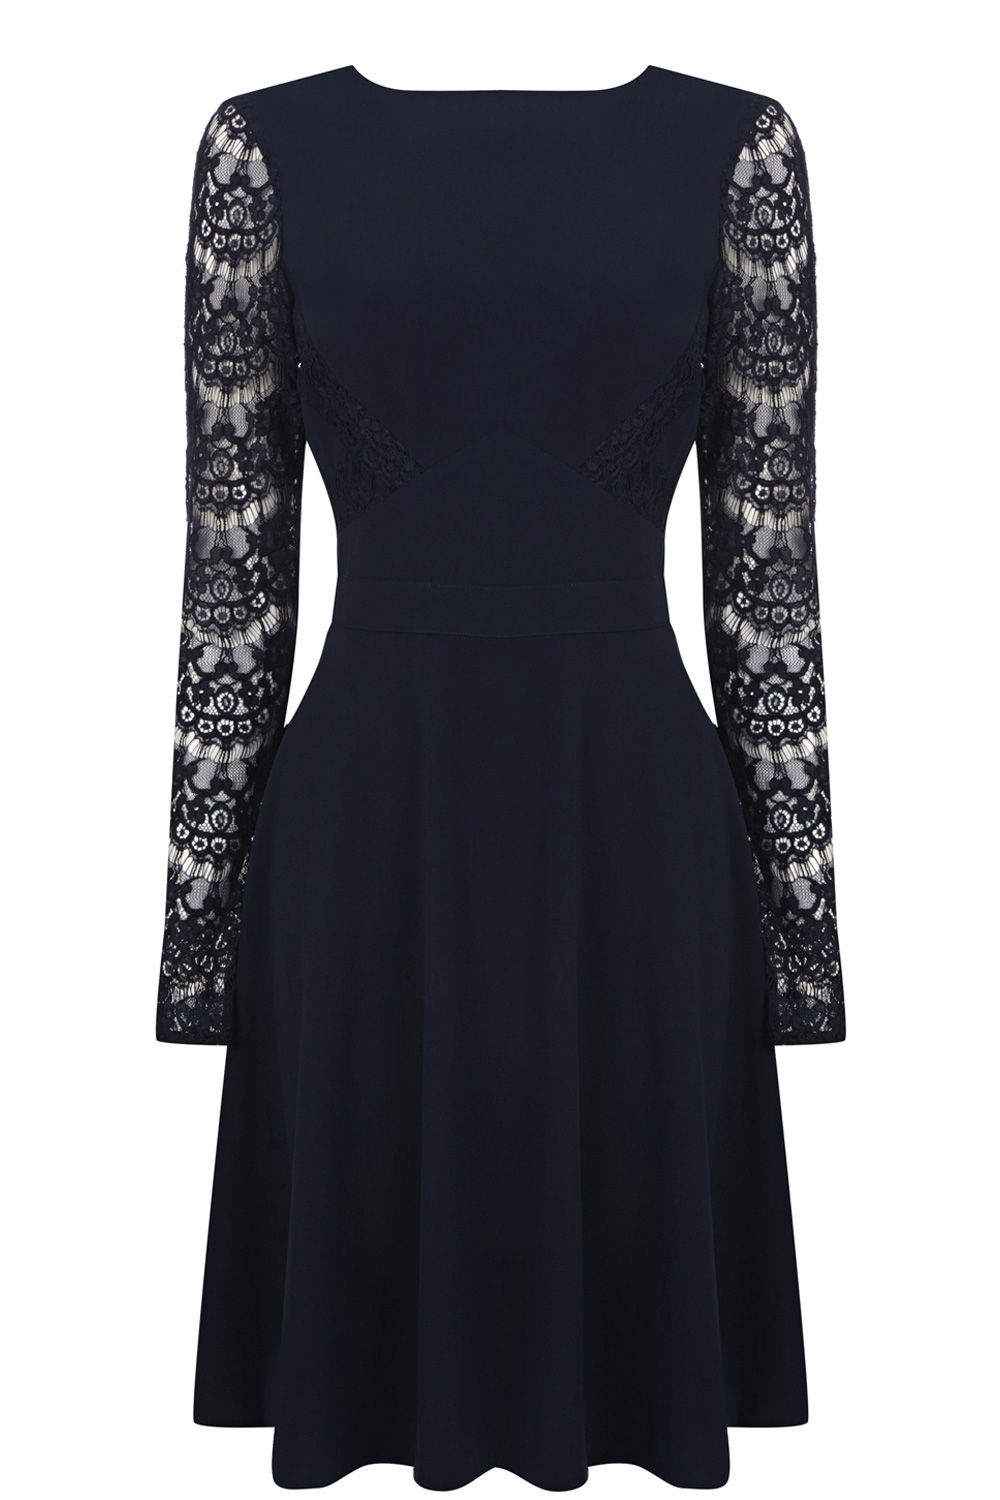 Lace sleeved skater dress